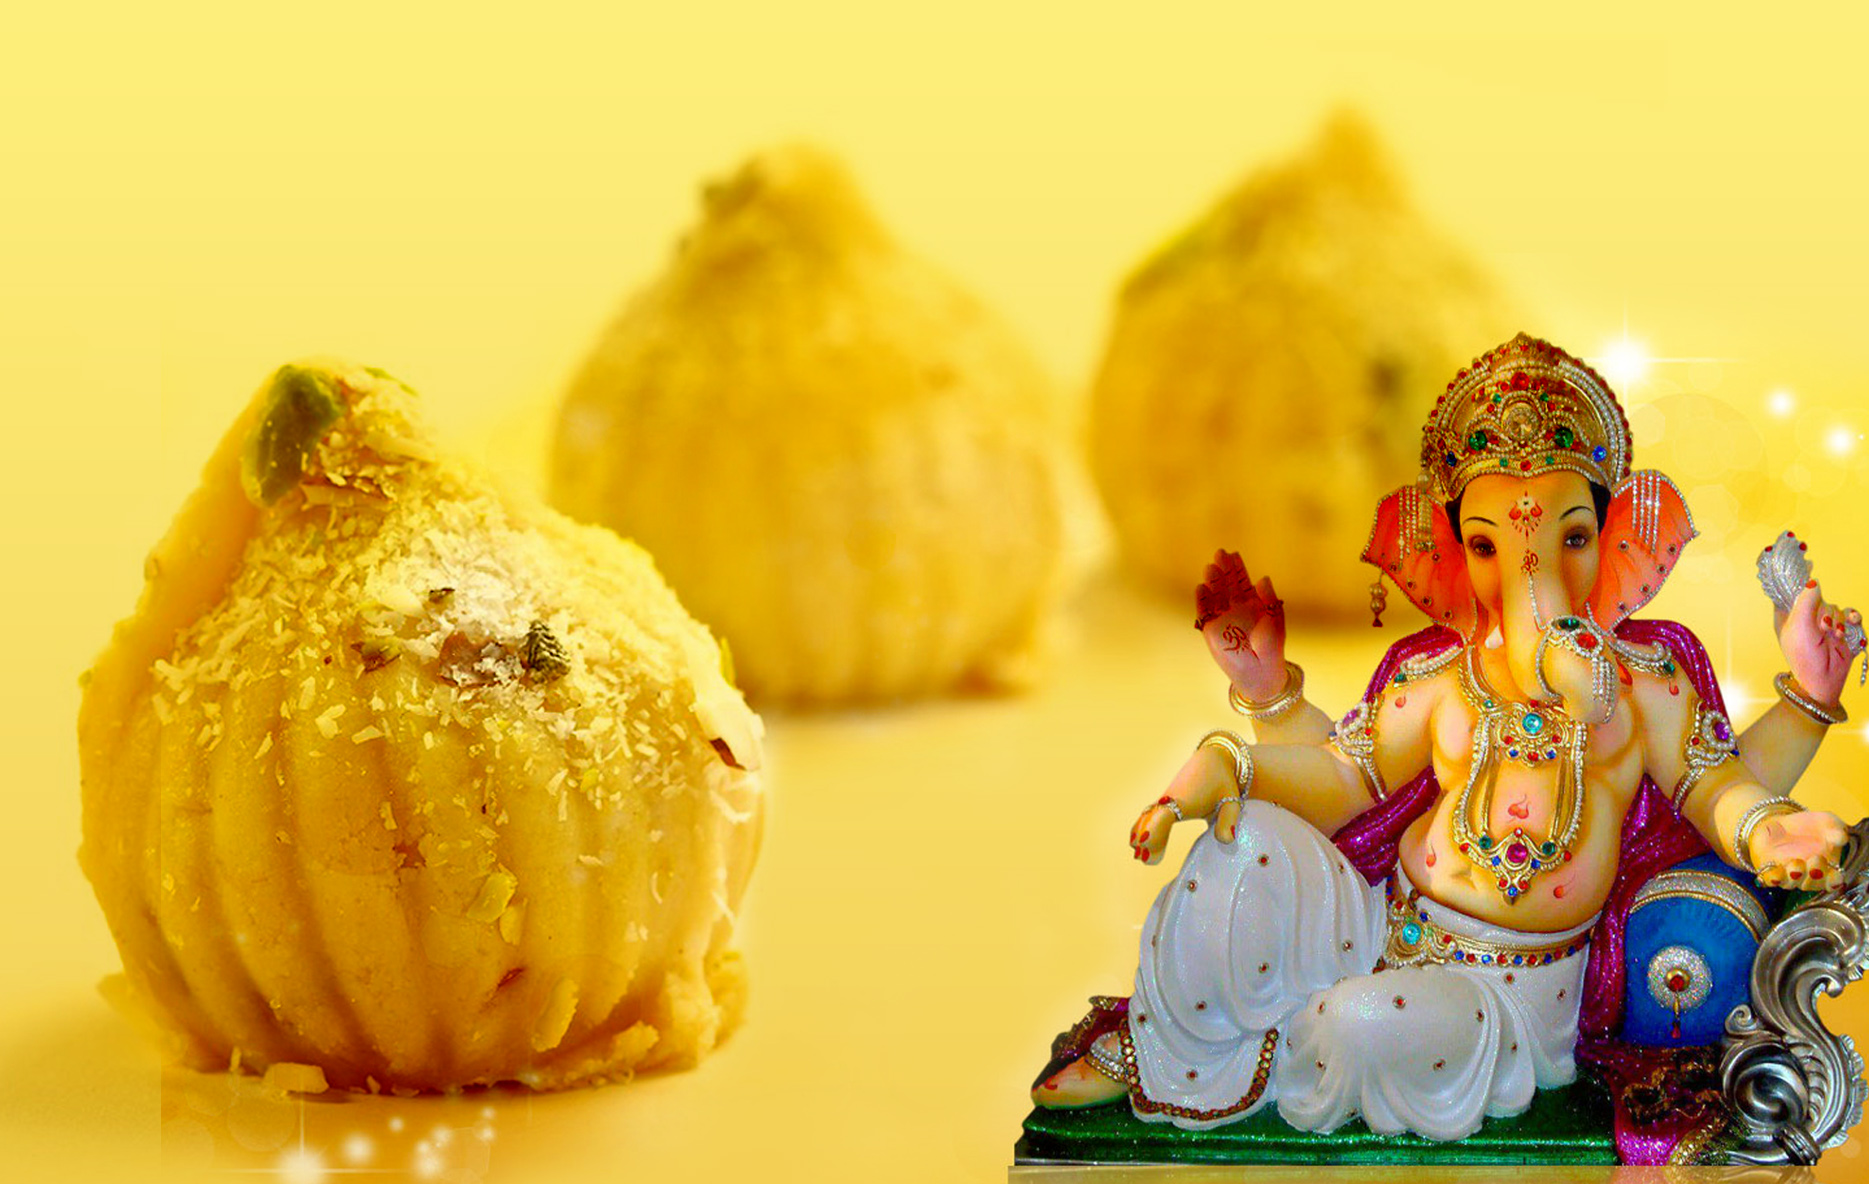 Sweets for Lord Ganesh